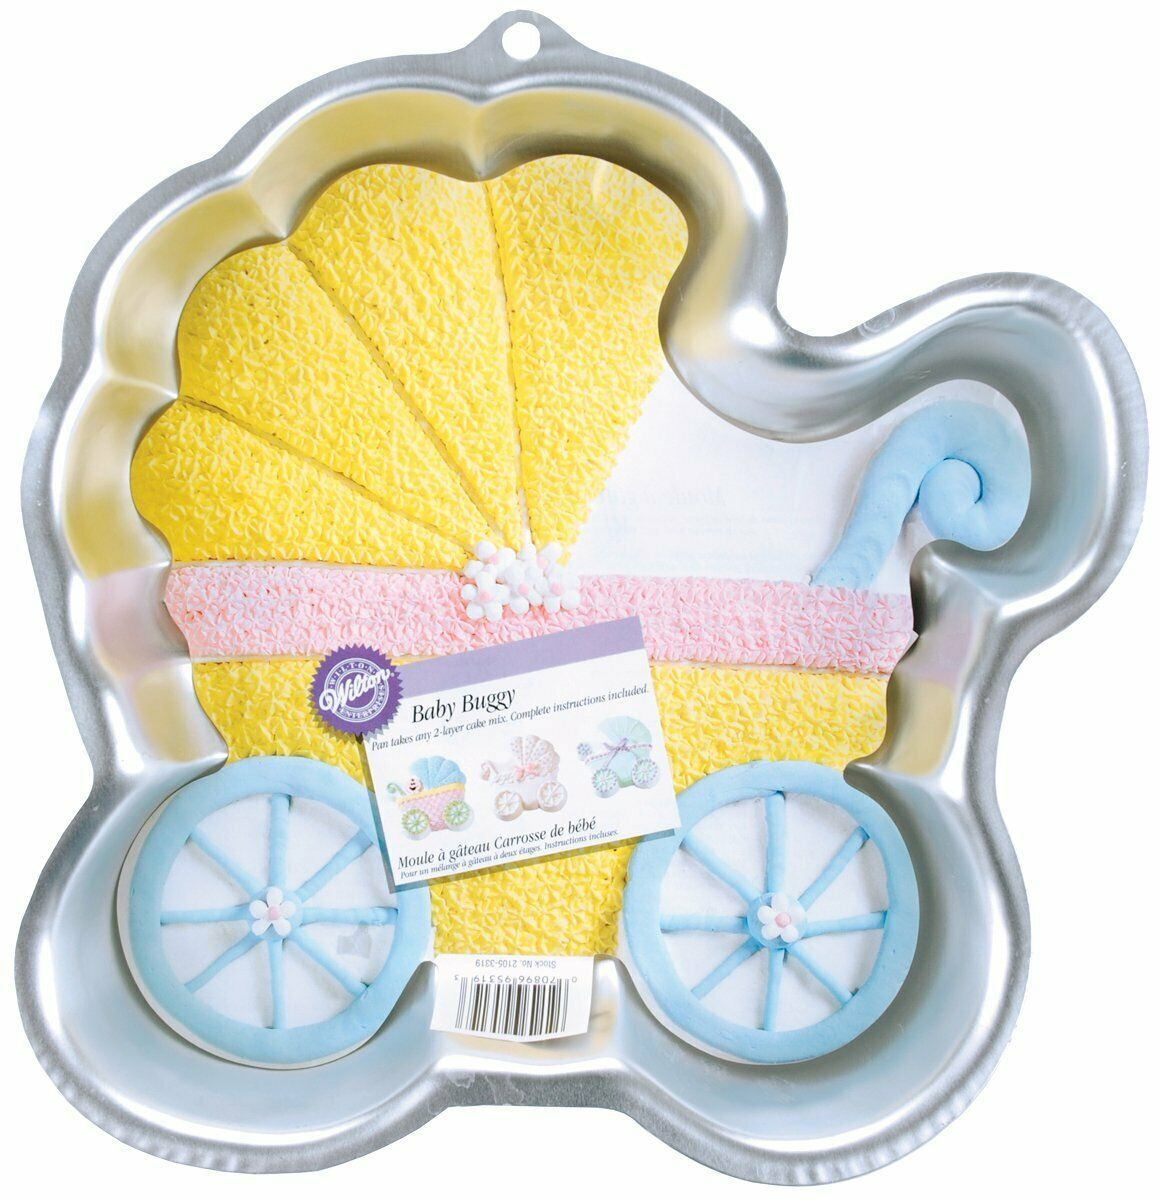 Primary image for Wilton Baby Buggy Cake Pan (2105-3319 2005)